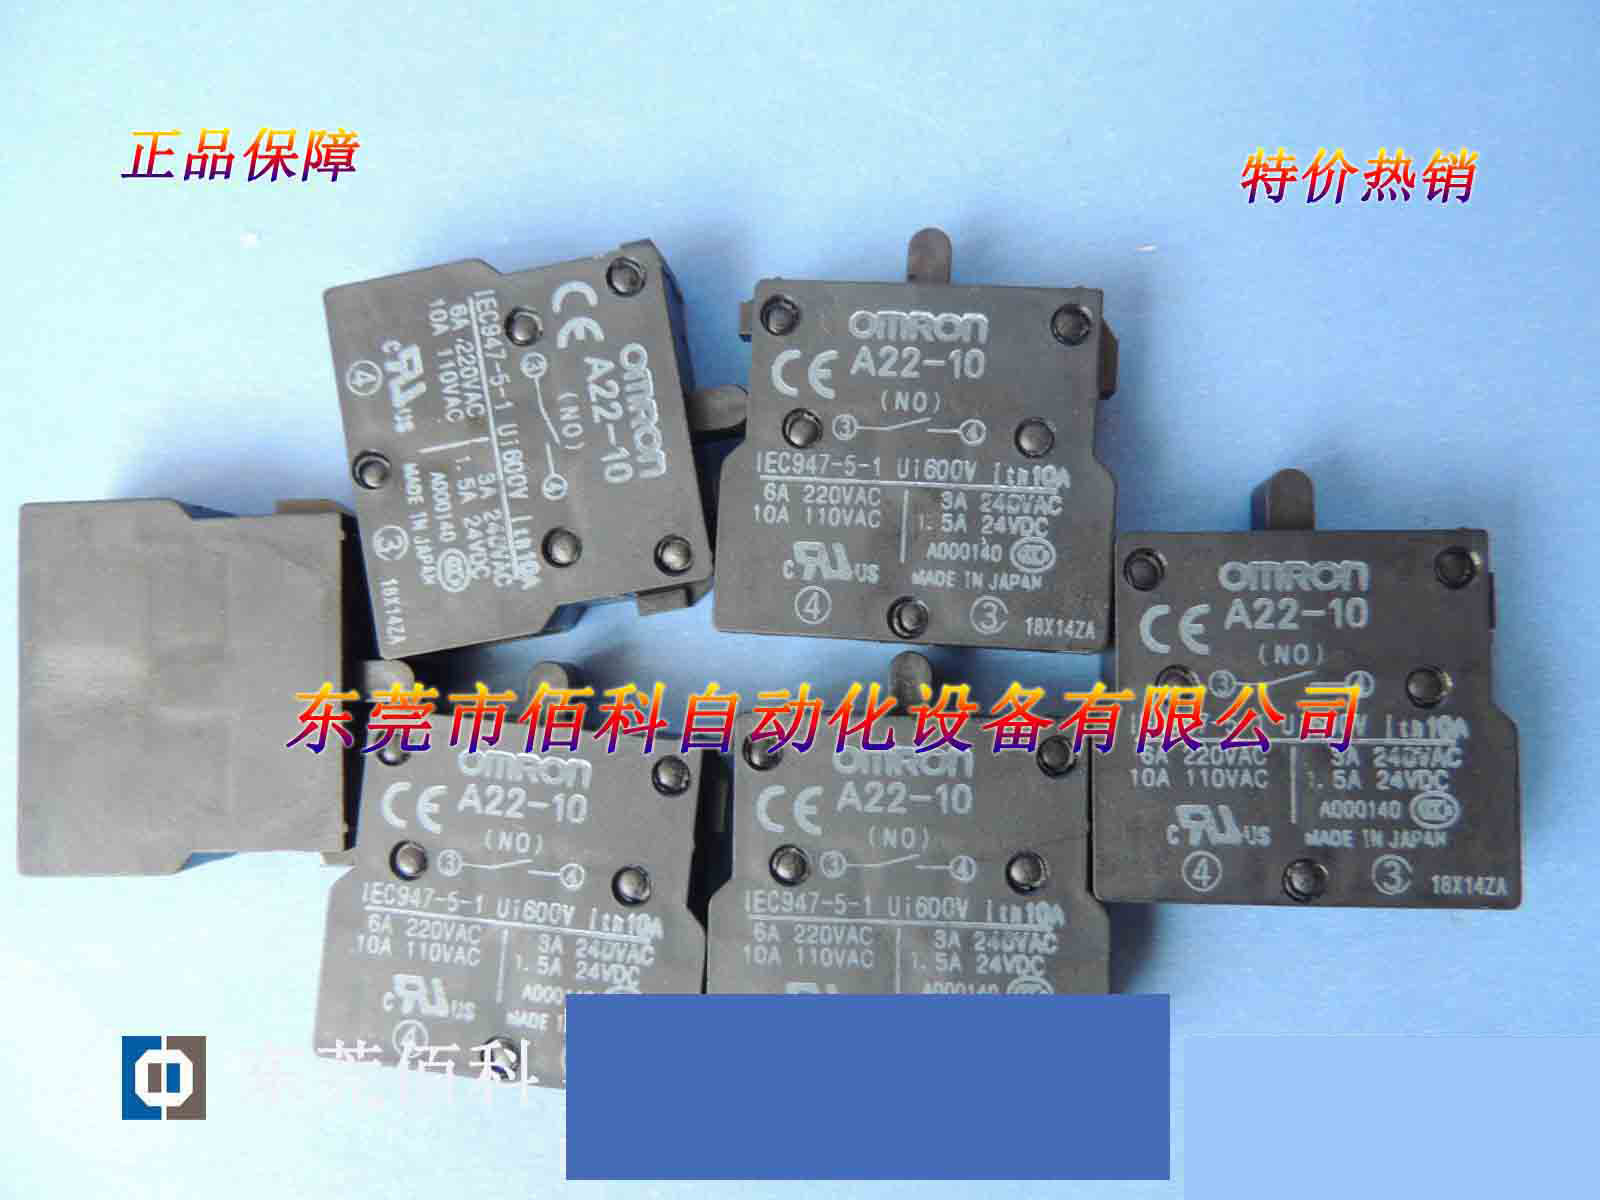 Special price new original Omron button switch A22-10Special price new original Omron button switch A22-10